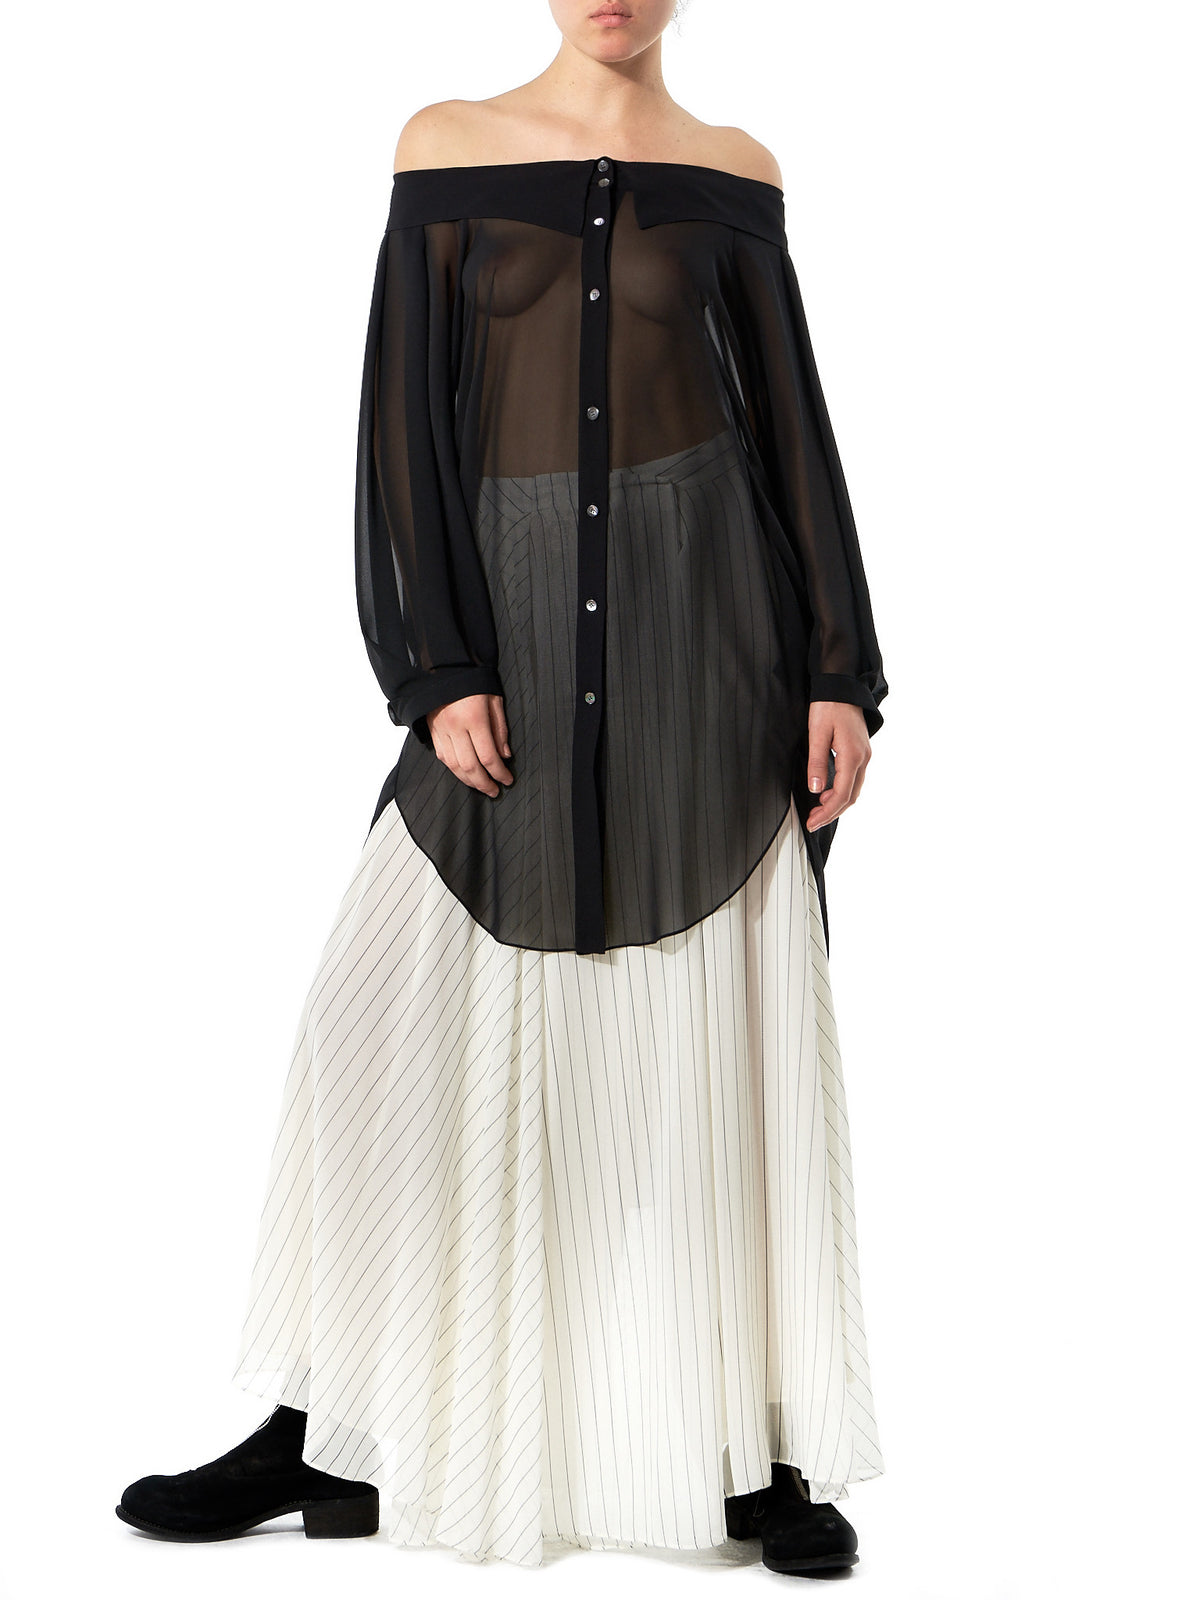 Off-Shoulder Buttoned Blouse (GLS-SD52-BLACK) - H. Lorenzo